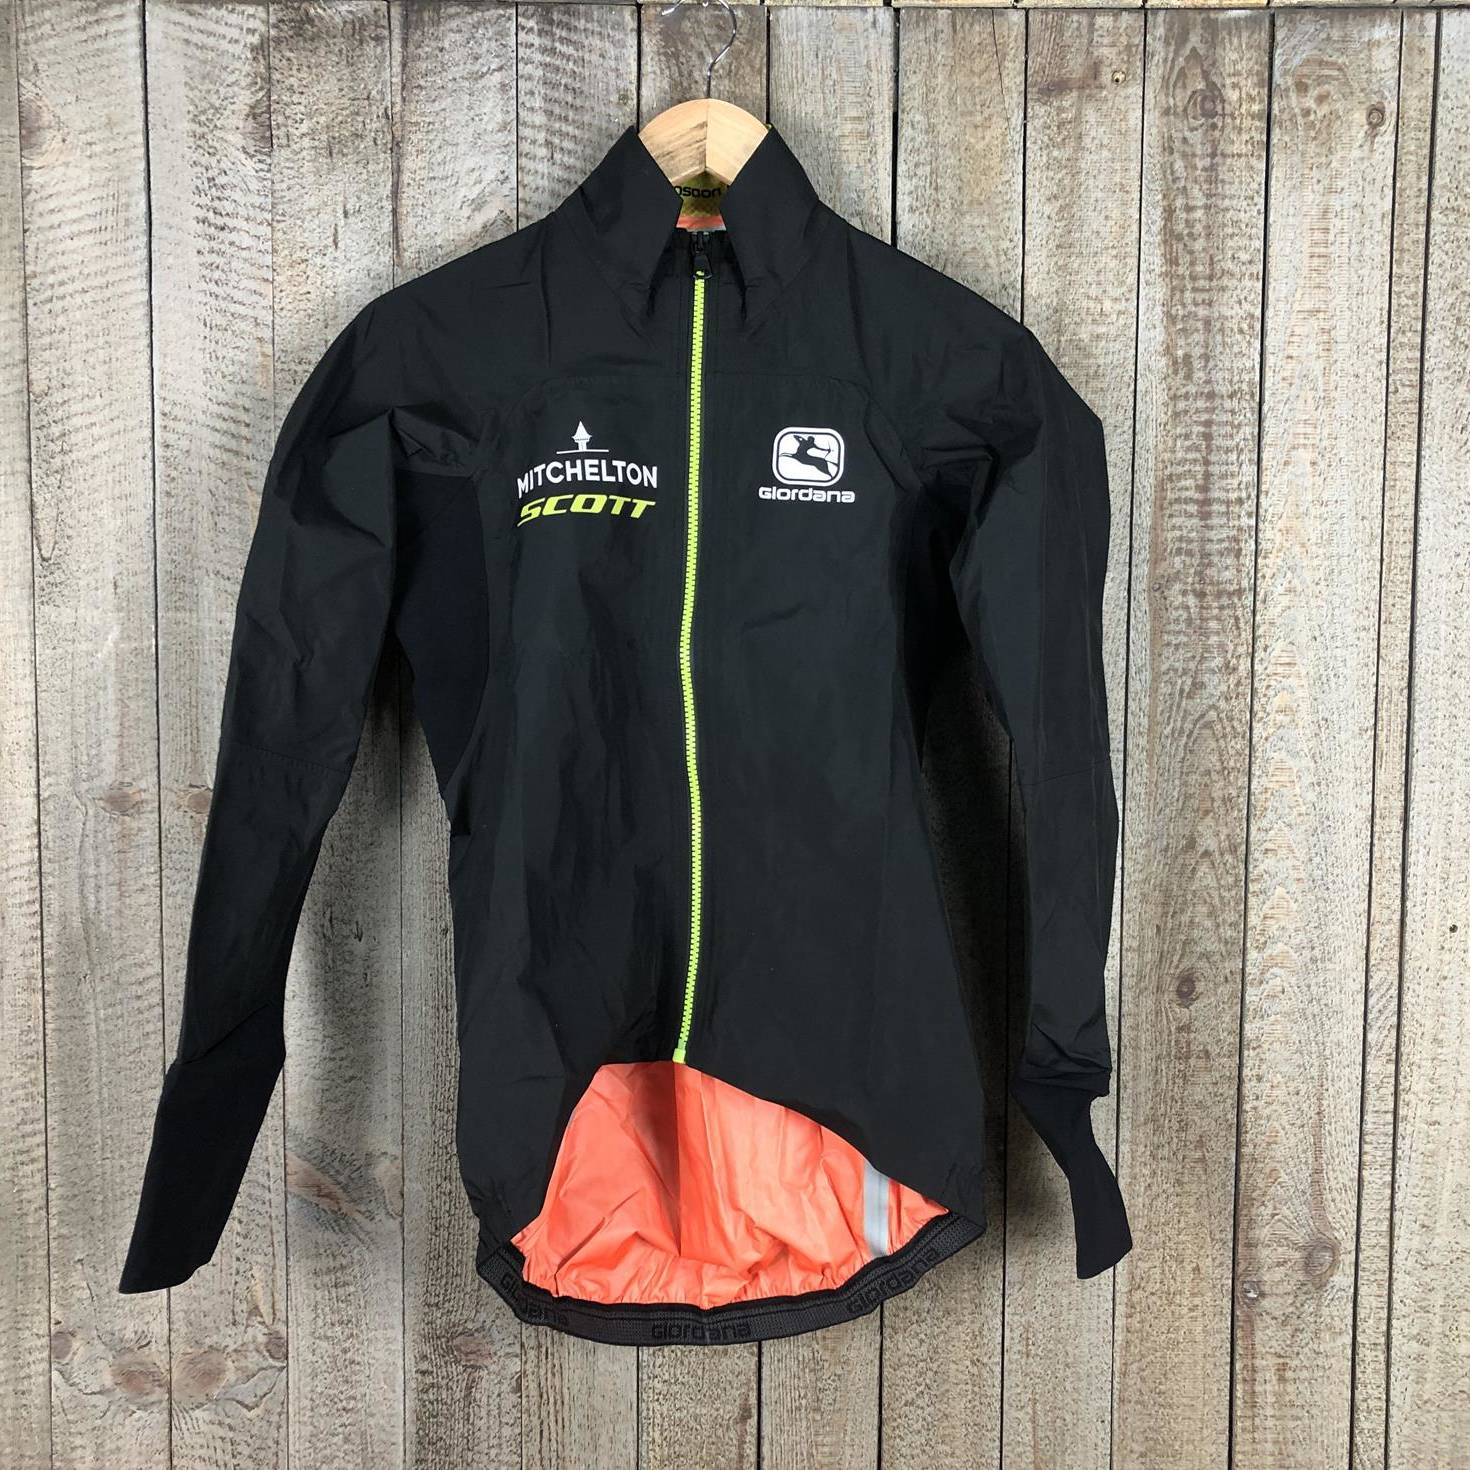 Monsoon Lyte Rain Jacket - Mitchelton Scott (Women's Team) 00003605 (1)